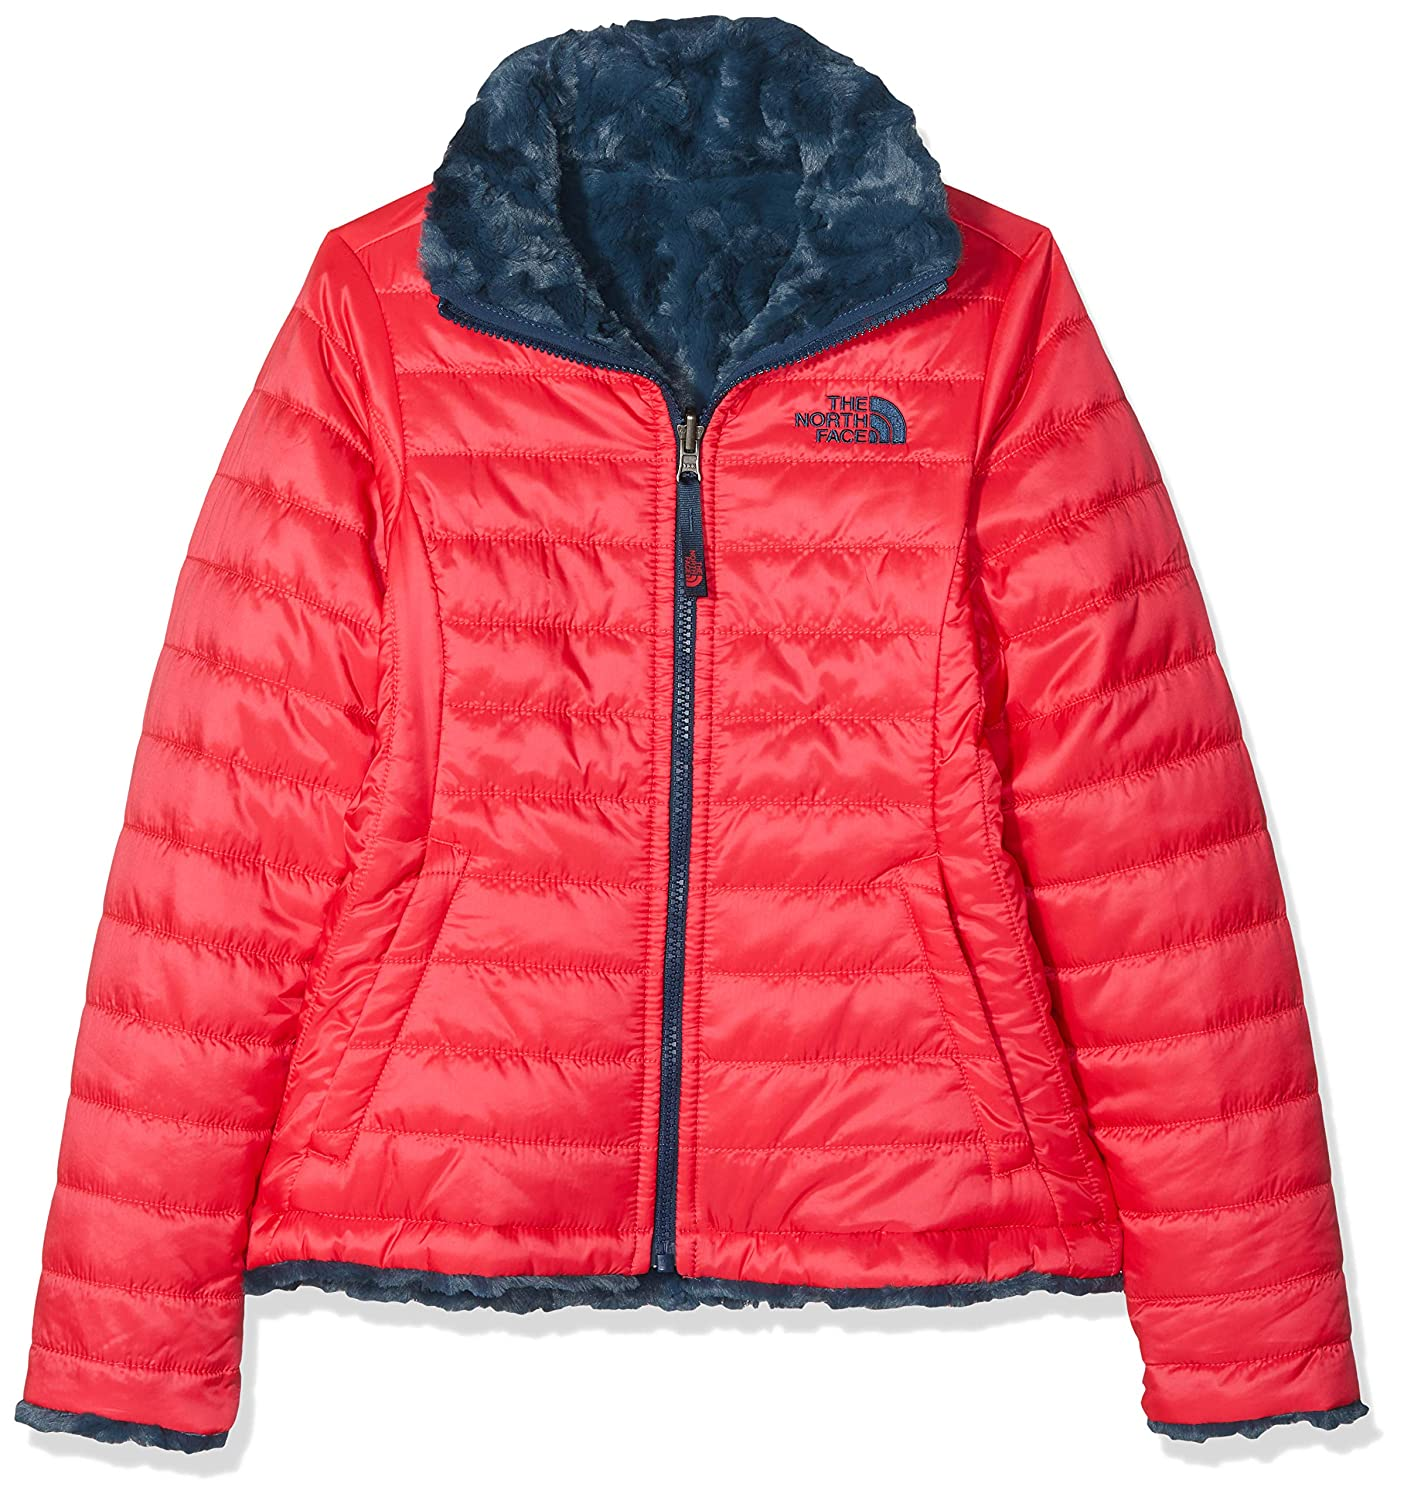 4f7b4d7e3 THE NORTH FACE Children's Reversible Mossbud Swirl Jacket: Amazon.co ...